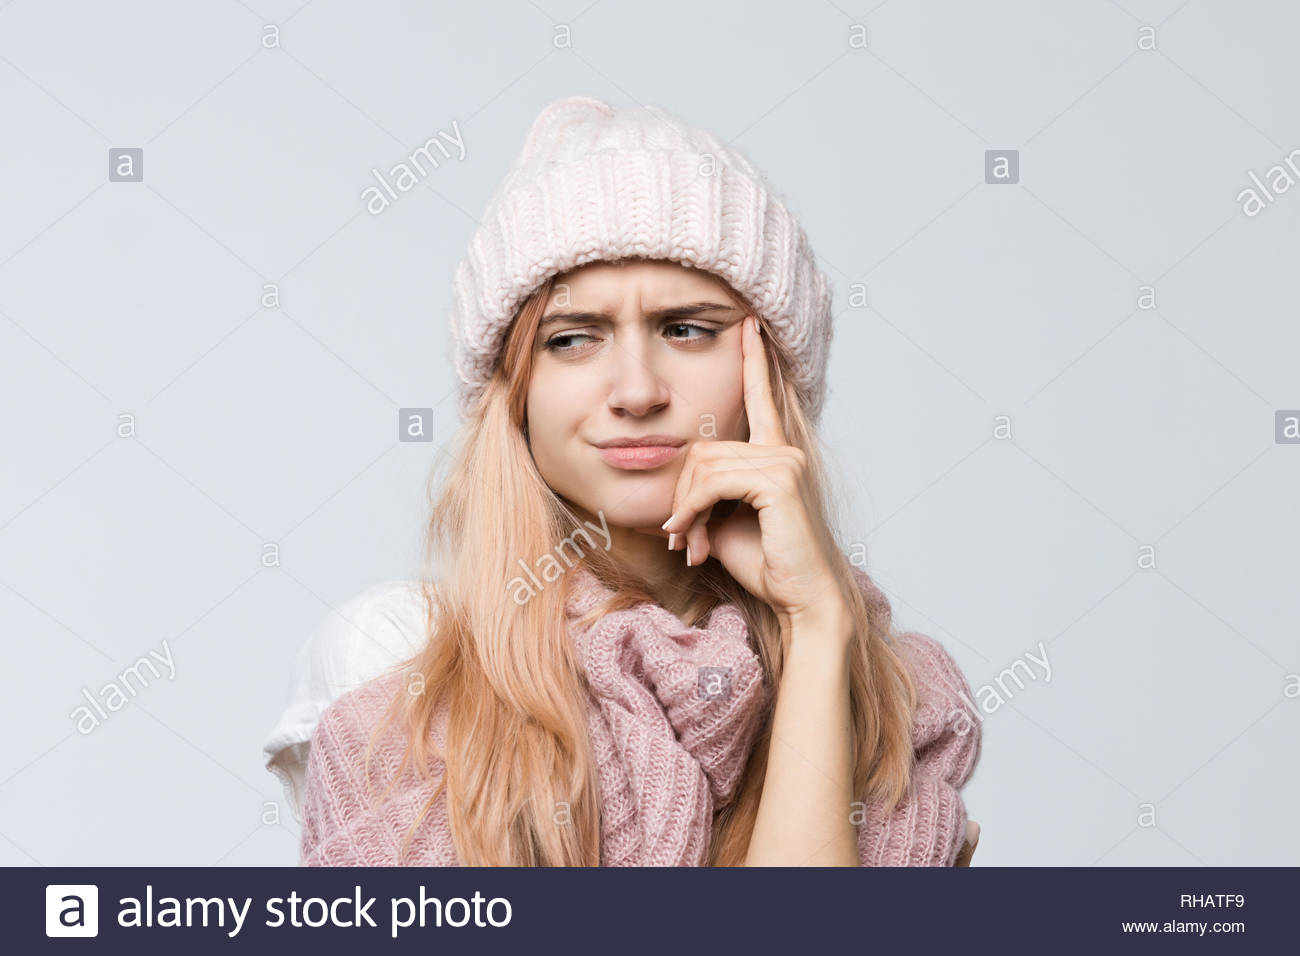 Indoor portrait of cute girl in a pink sweater and white hat frowning face, presses hand to cheek, looks aside with pensive expression/ doubts. - Stock Image